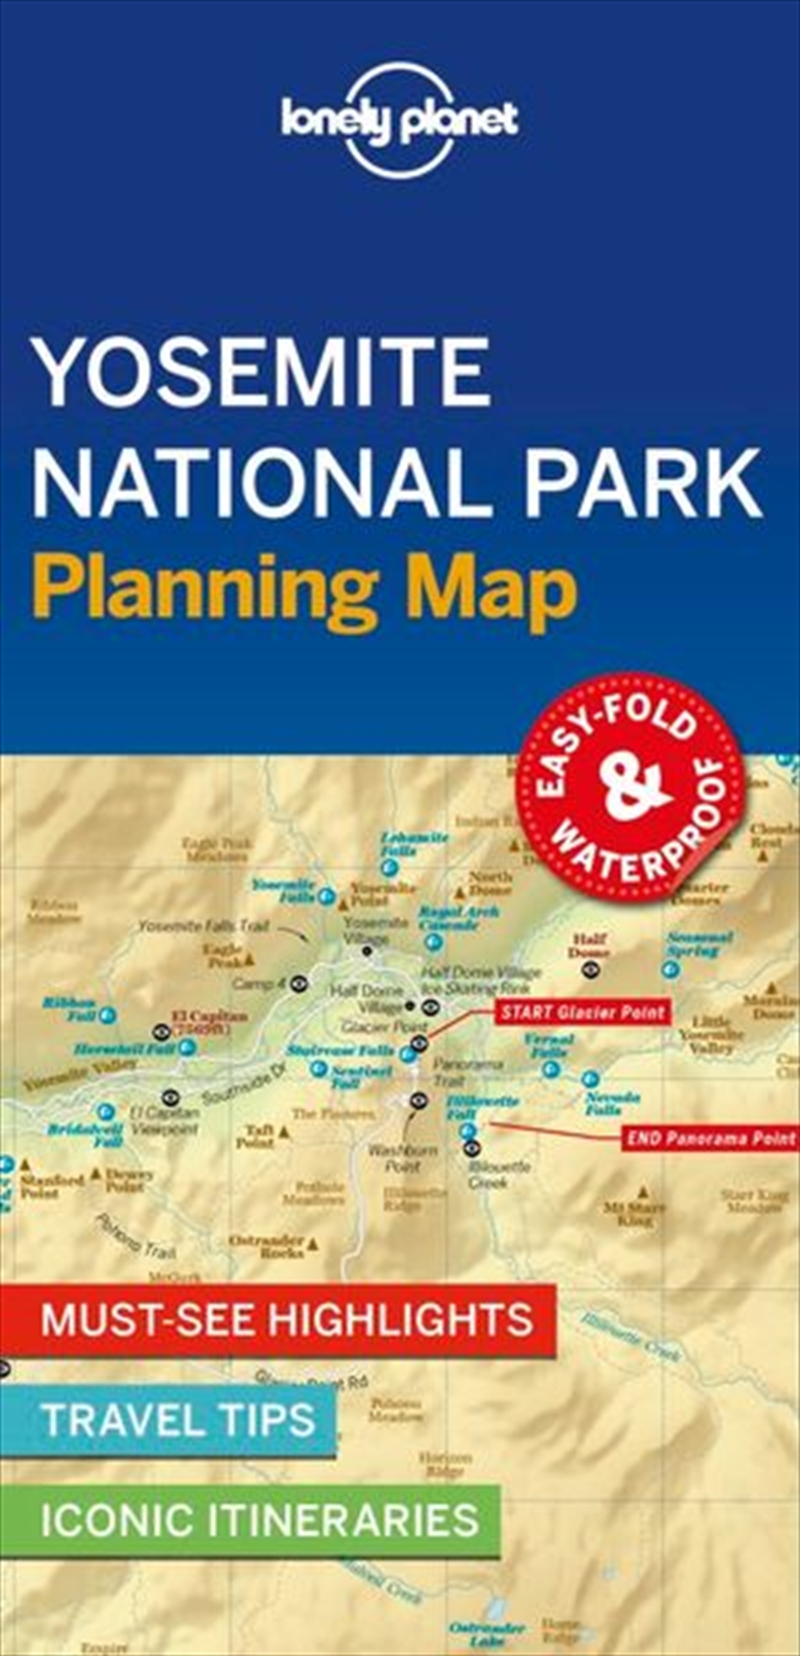 Lonely Planet Travel Guide - 1st Edition Yosemite National Park Planning Map | Sheet Map